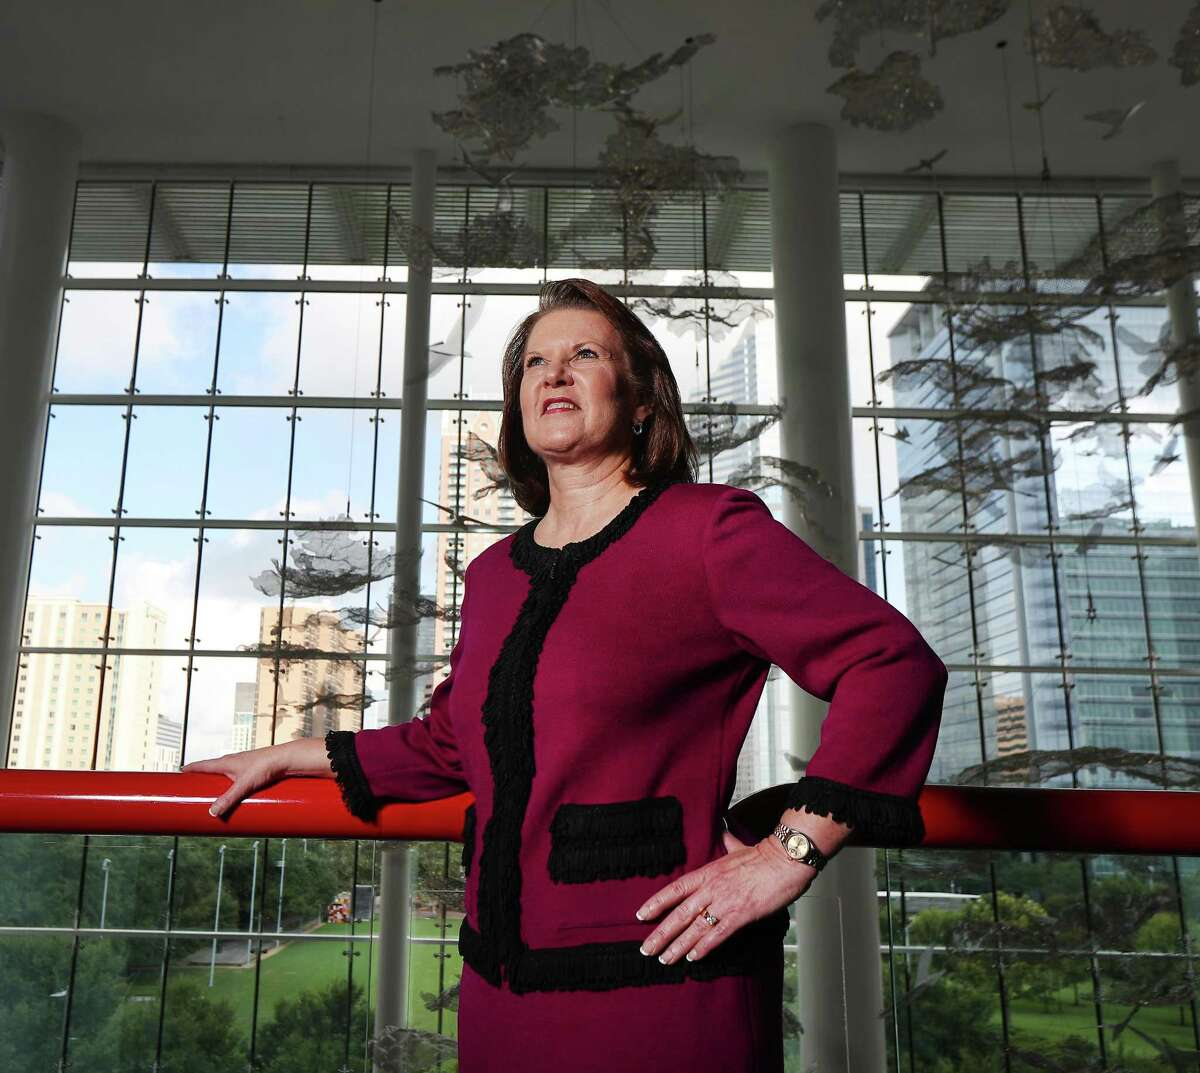 Houston First Corporation President and CEO, Brenda Bazan poses for a portrait in the George R. Brown Convention Center Friday, Aug. 16, 2019, in Houston.